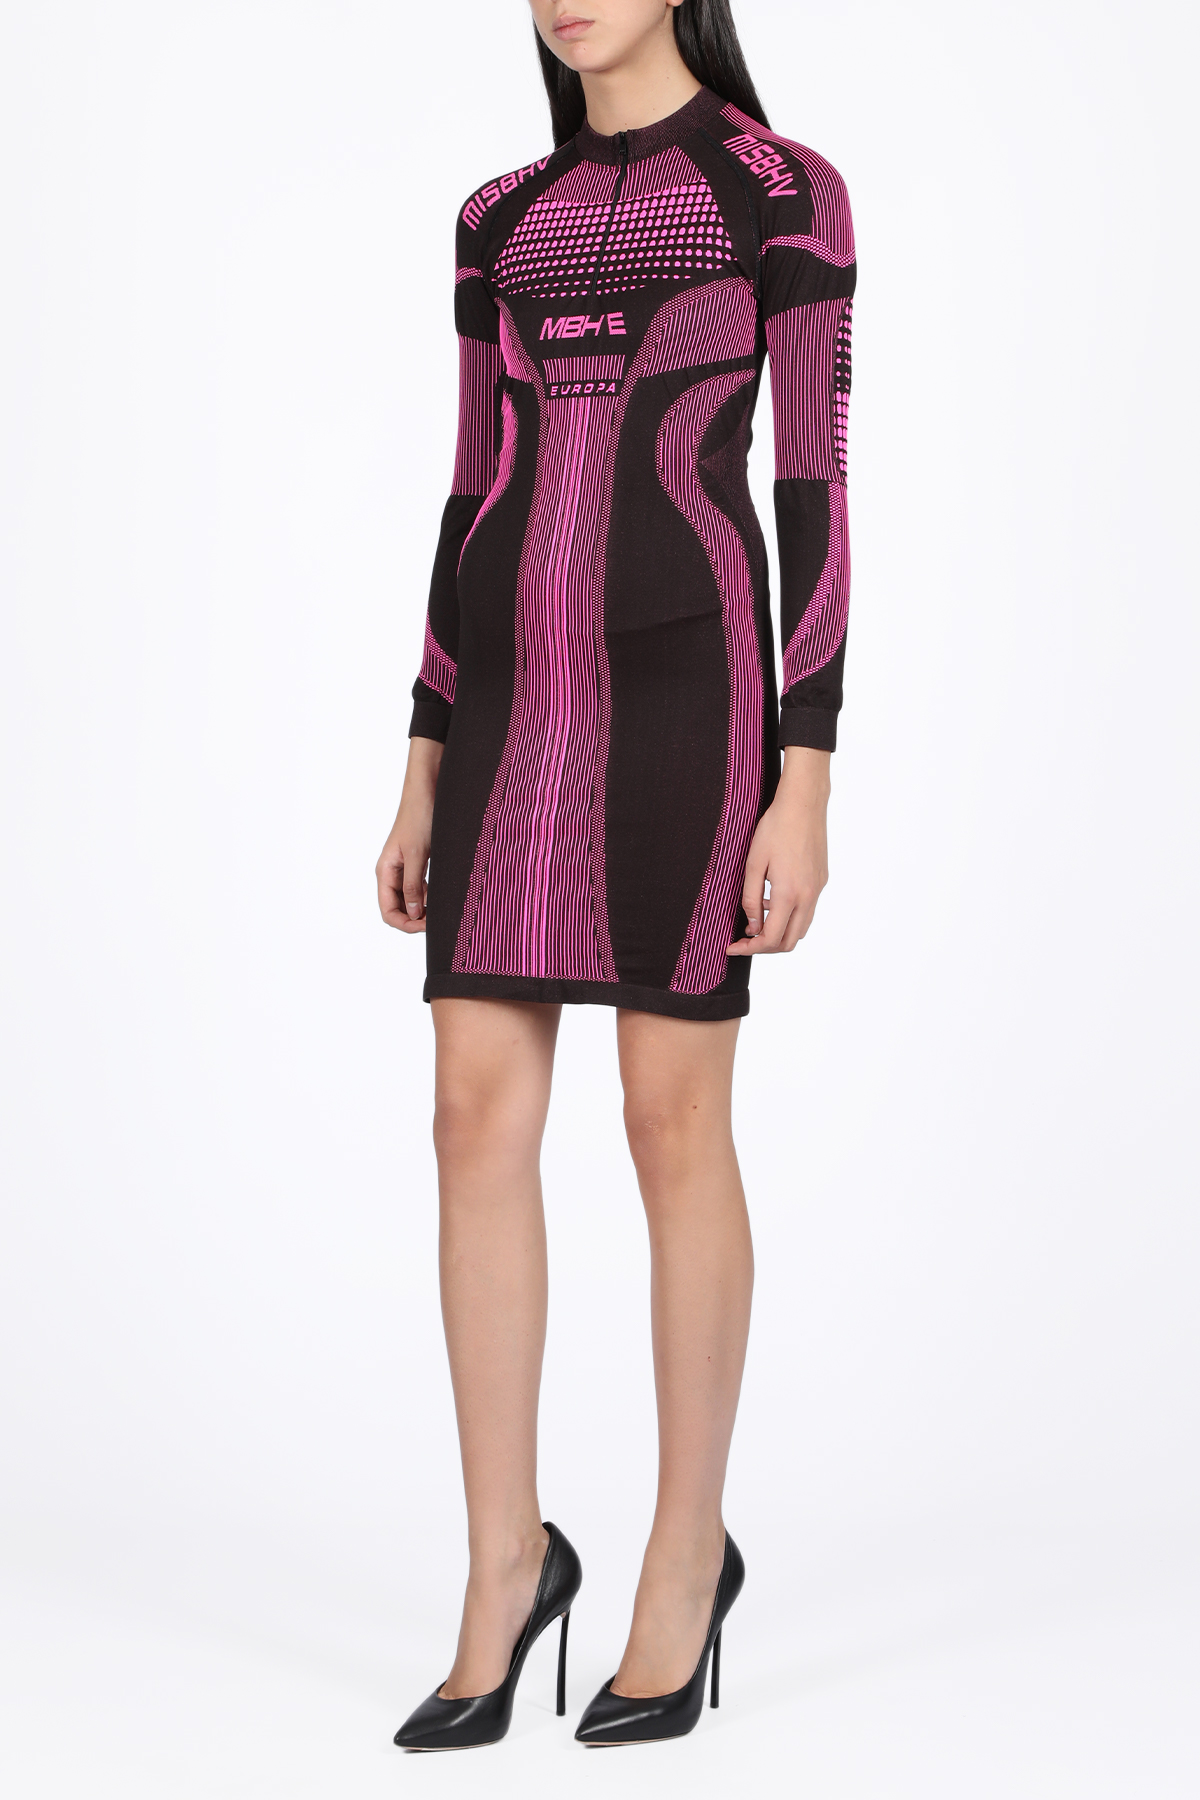 ACTIVE FUTURE DRESS MISBHV | 11 | 119W111 ACTIVE FUTURE DRESSBLACK/PINK